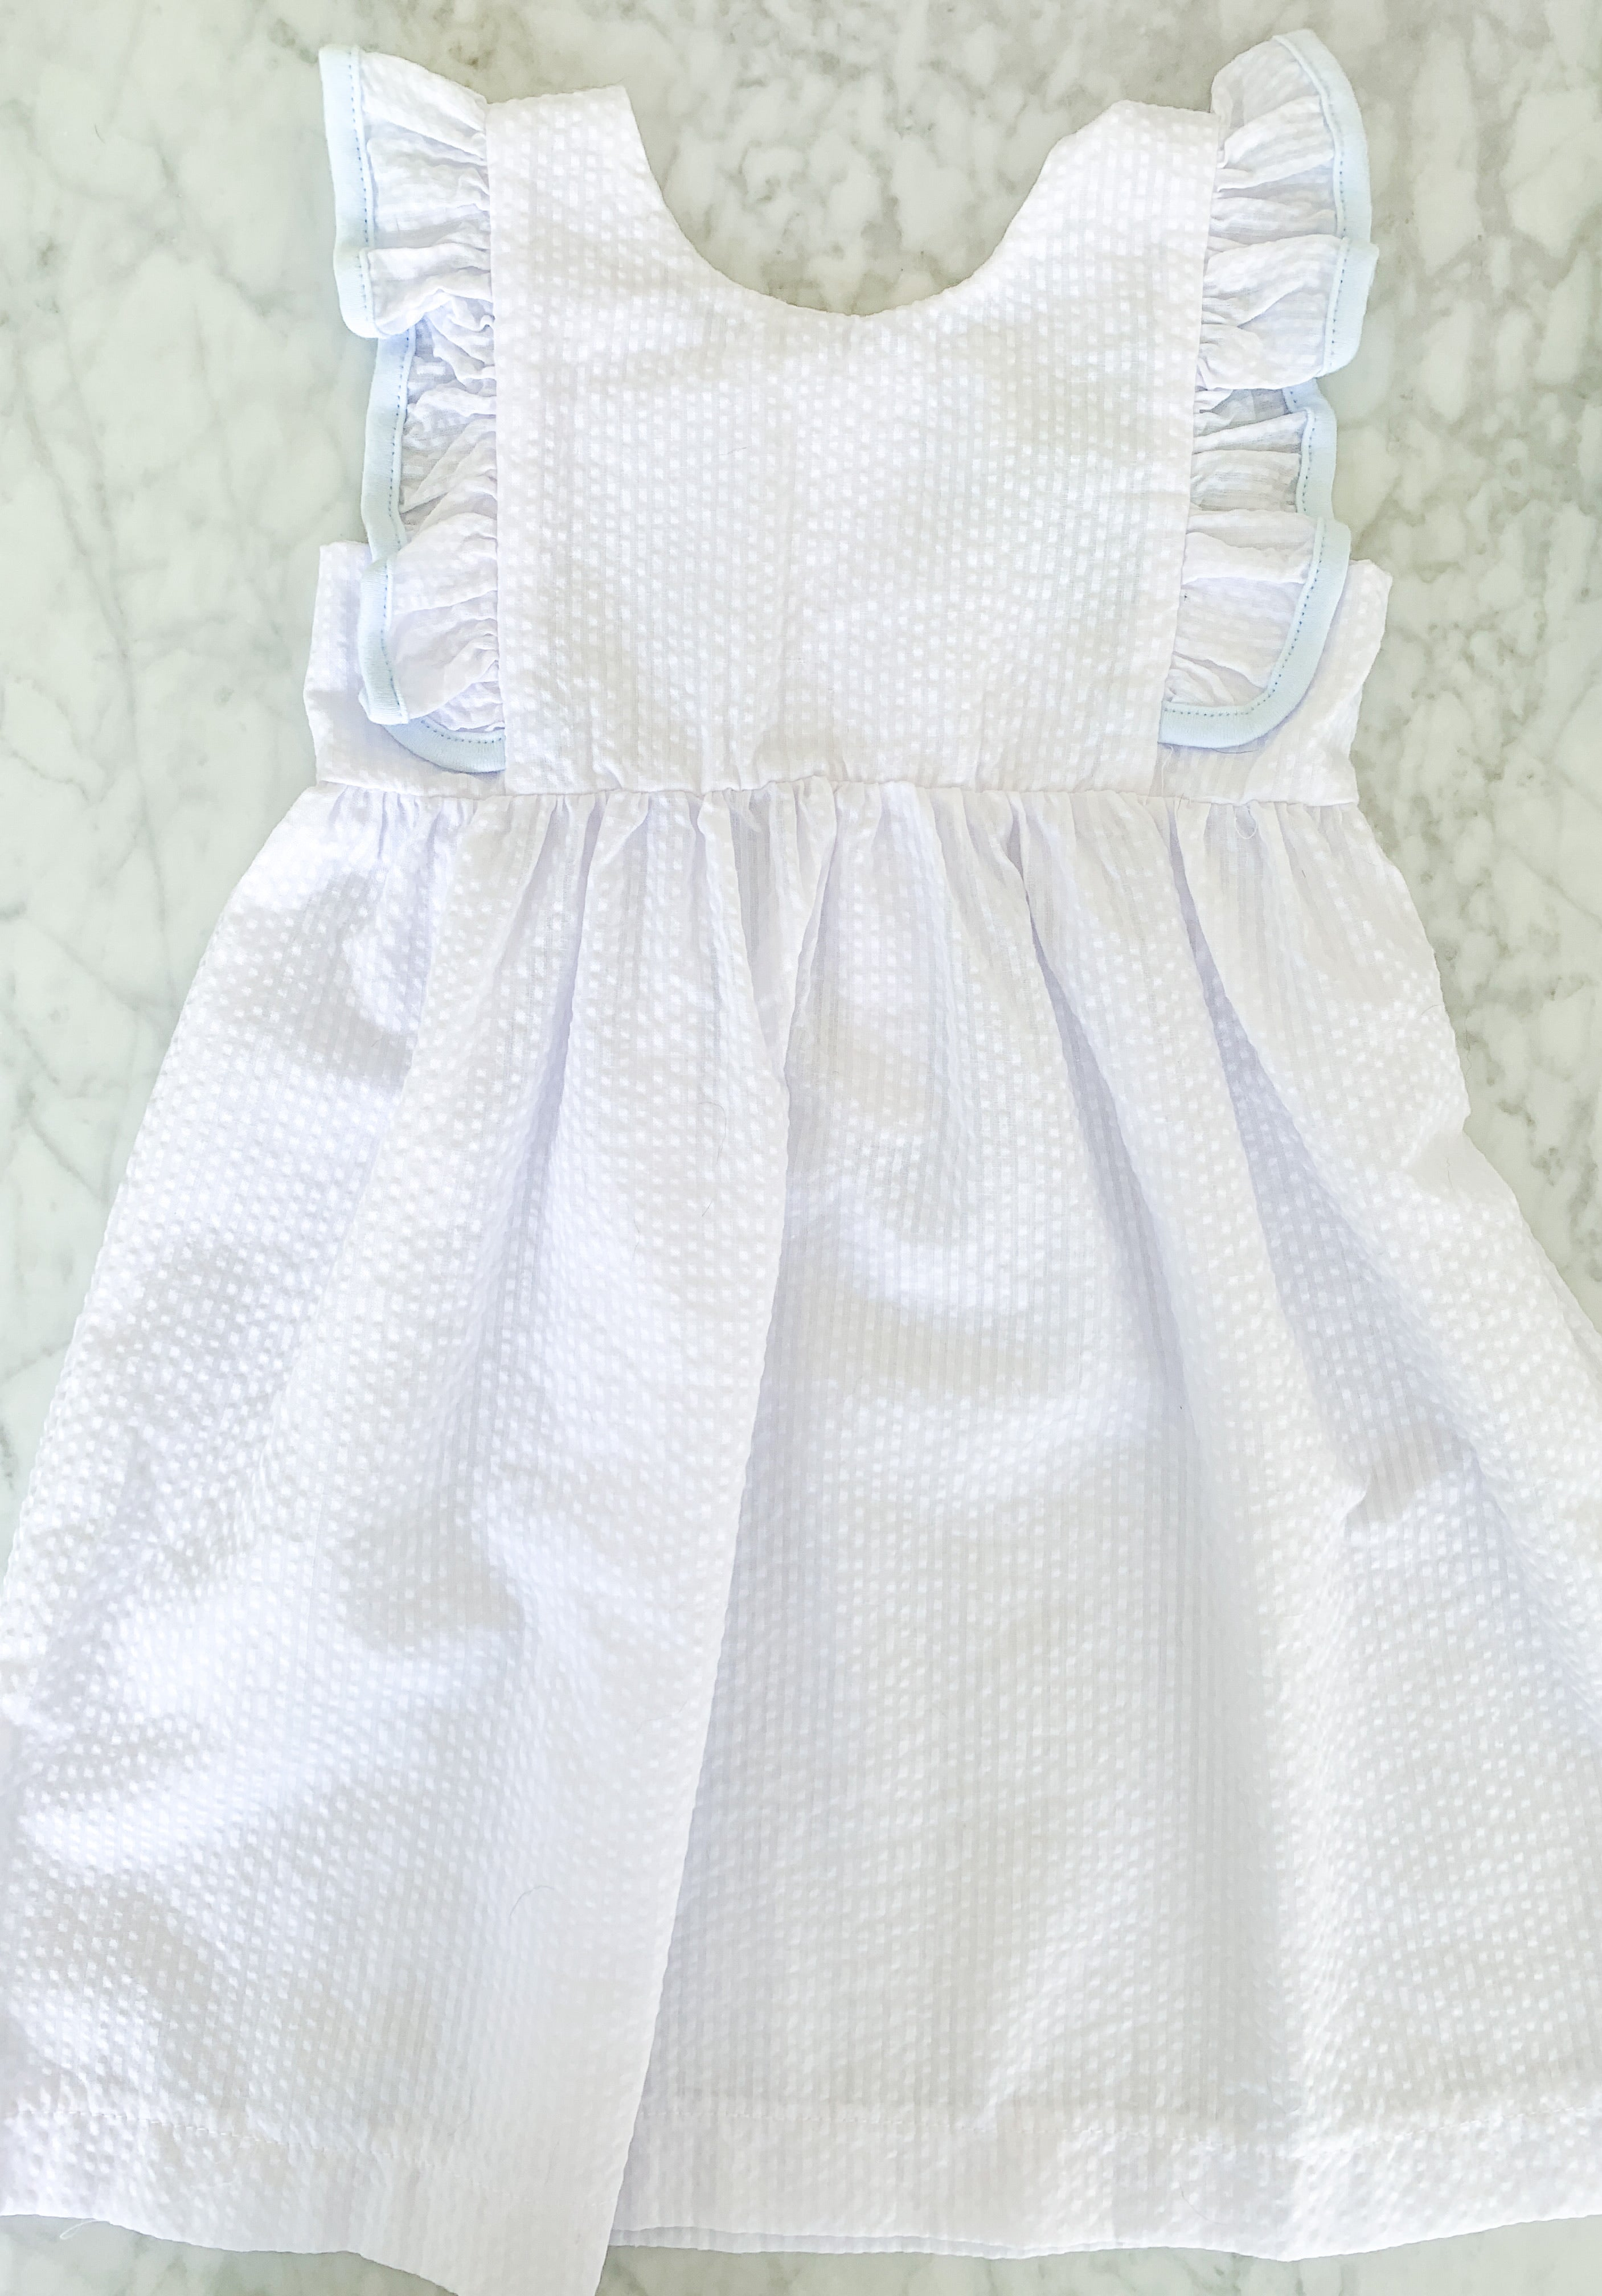 RUFFLED SLEEVE SEERSUCKER DRESS - WHITE WITH BLUE TRIM - Made by McNamara